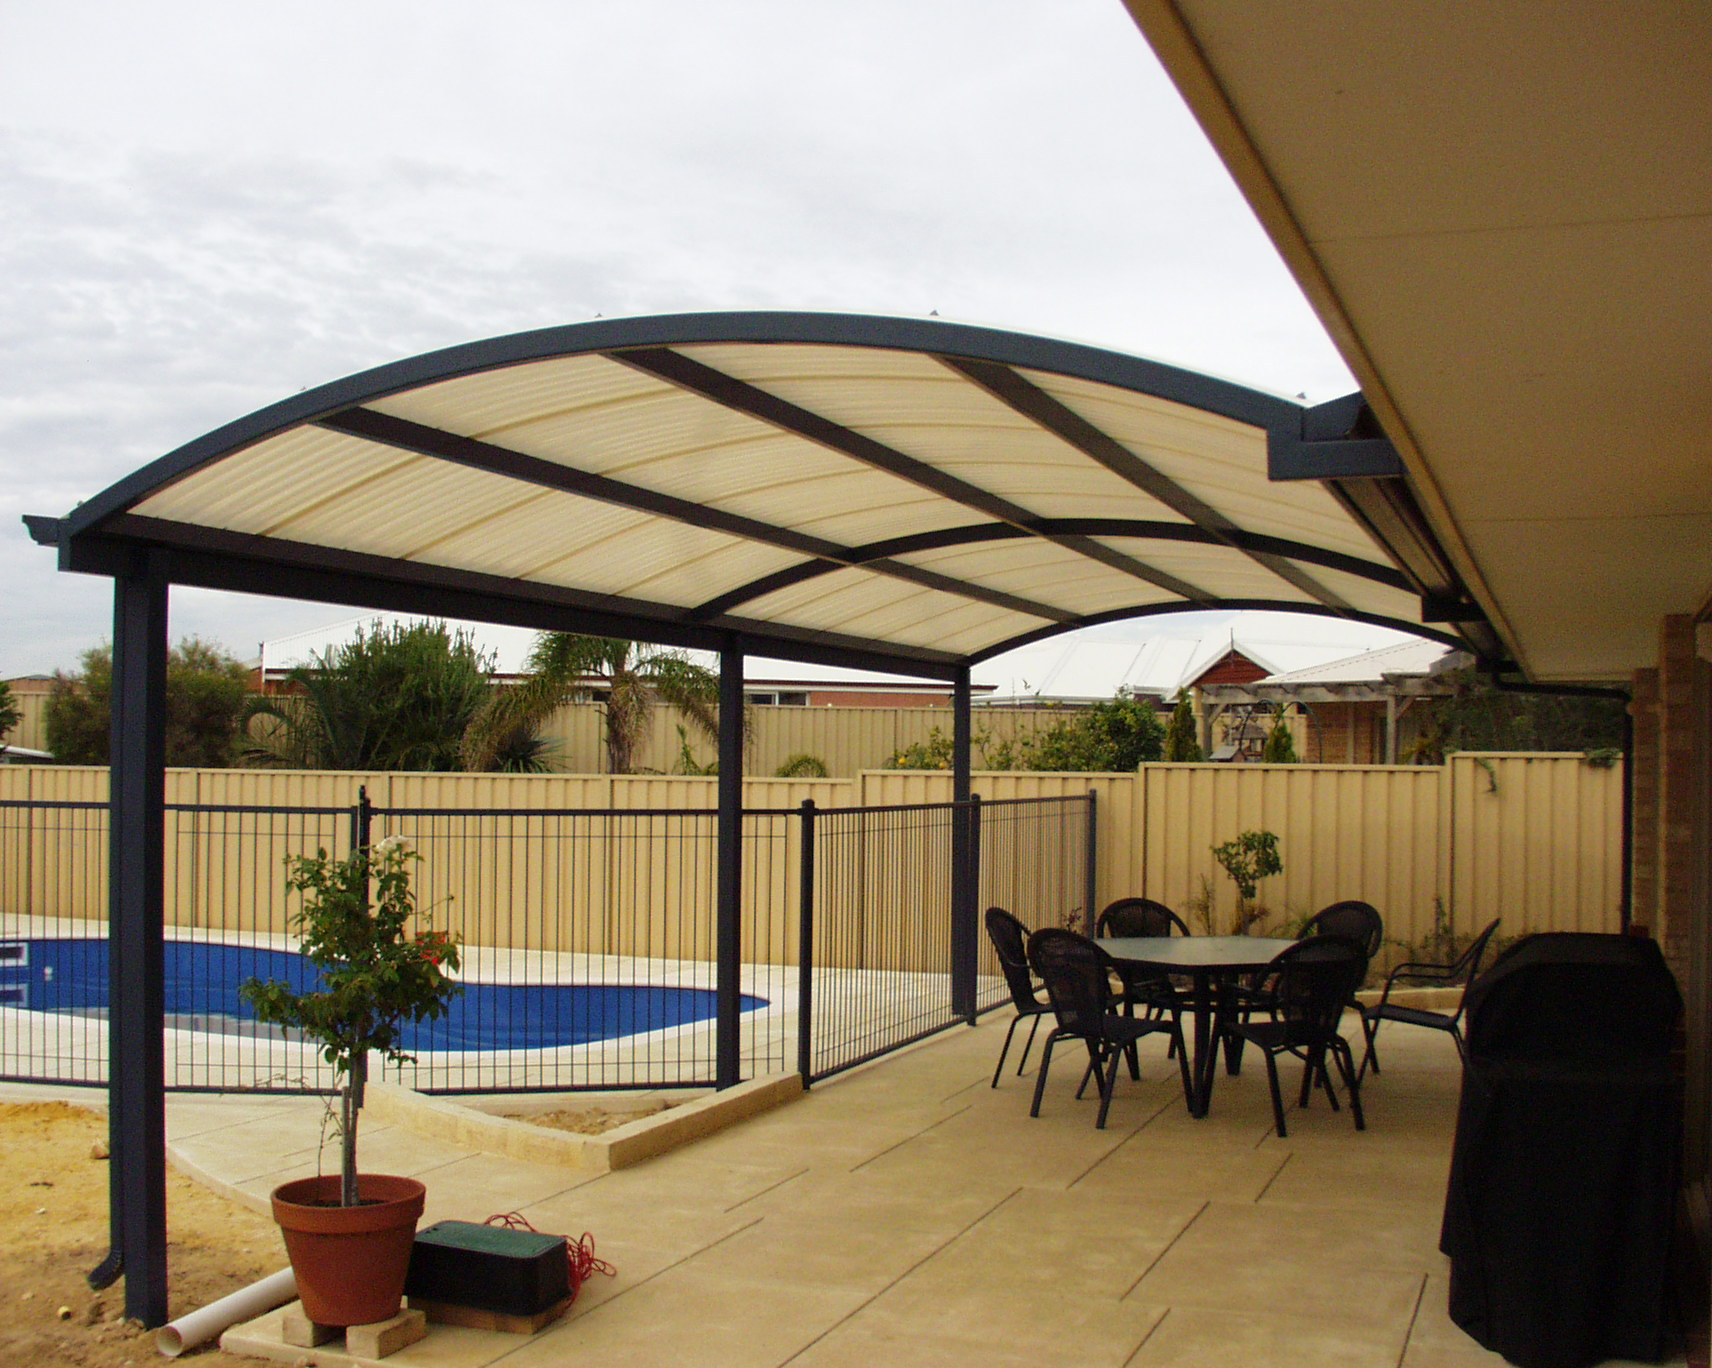 Backyard Patio Covers: From Usefulness To Style - HomesFeed on Backyard Patio Cover Ideas  id=35047